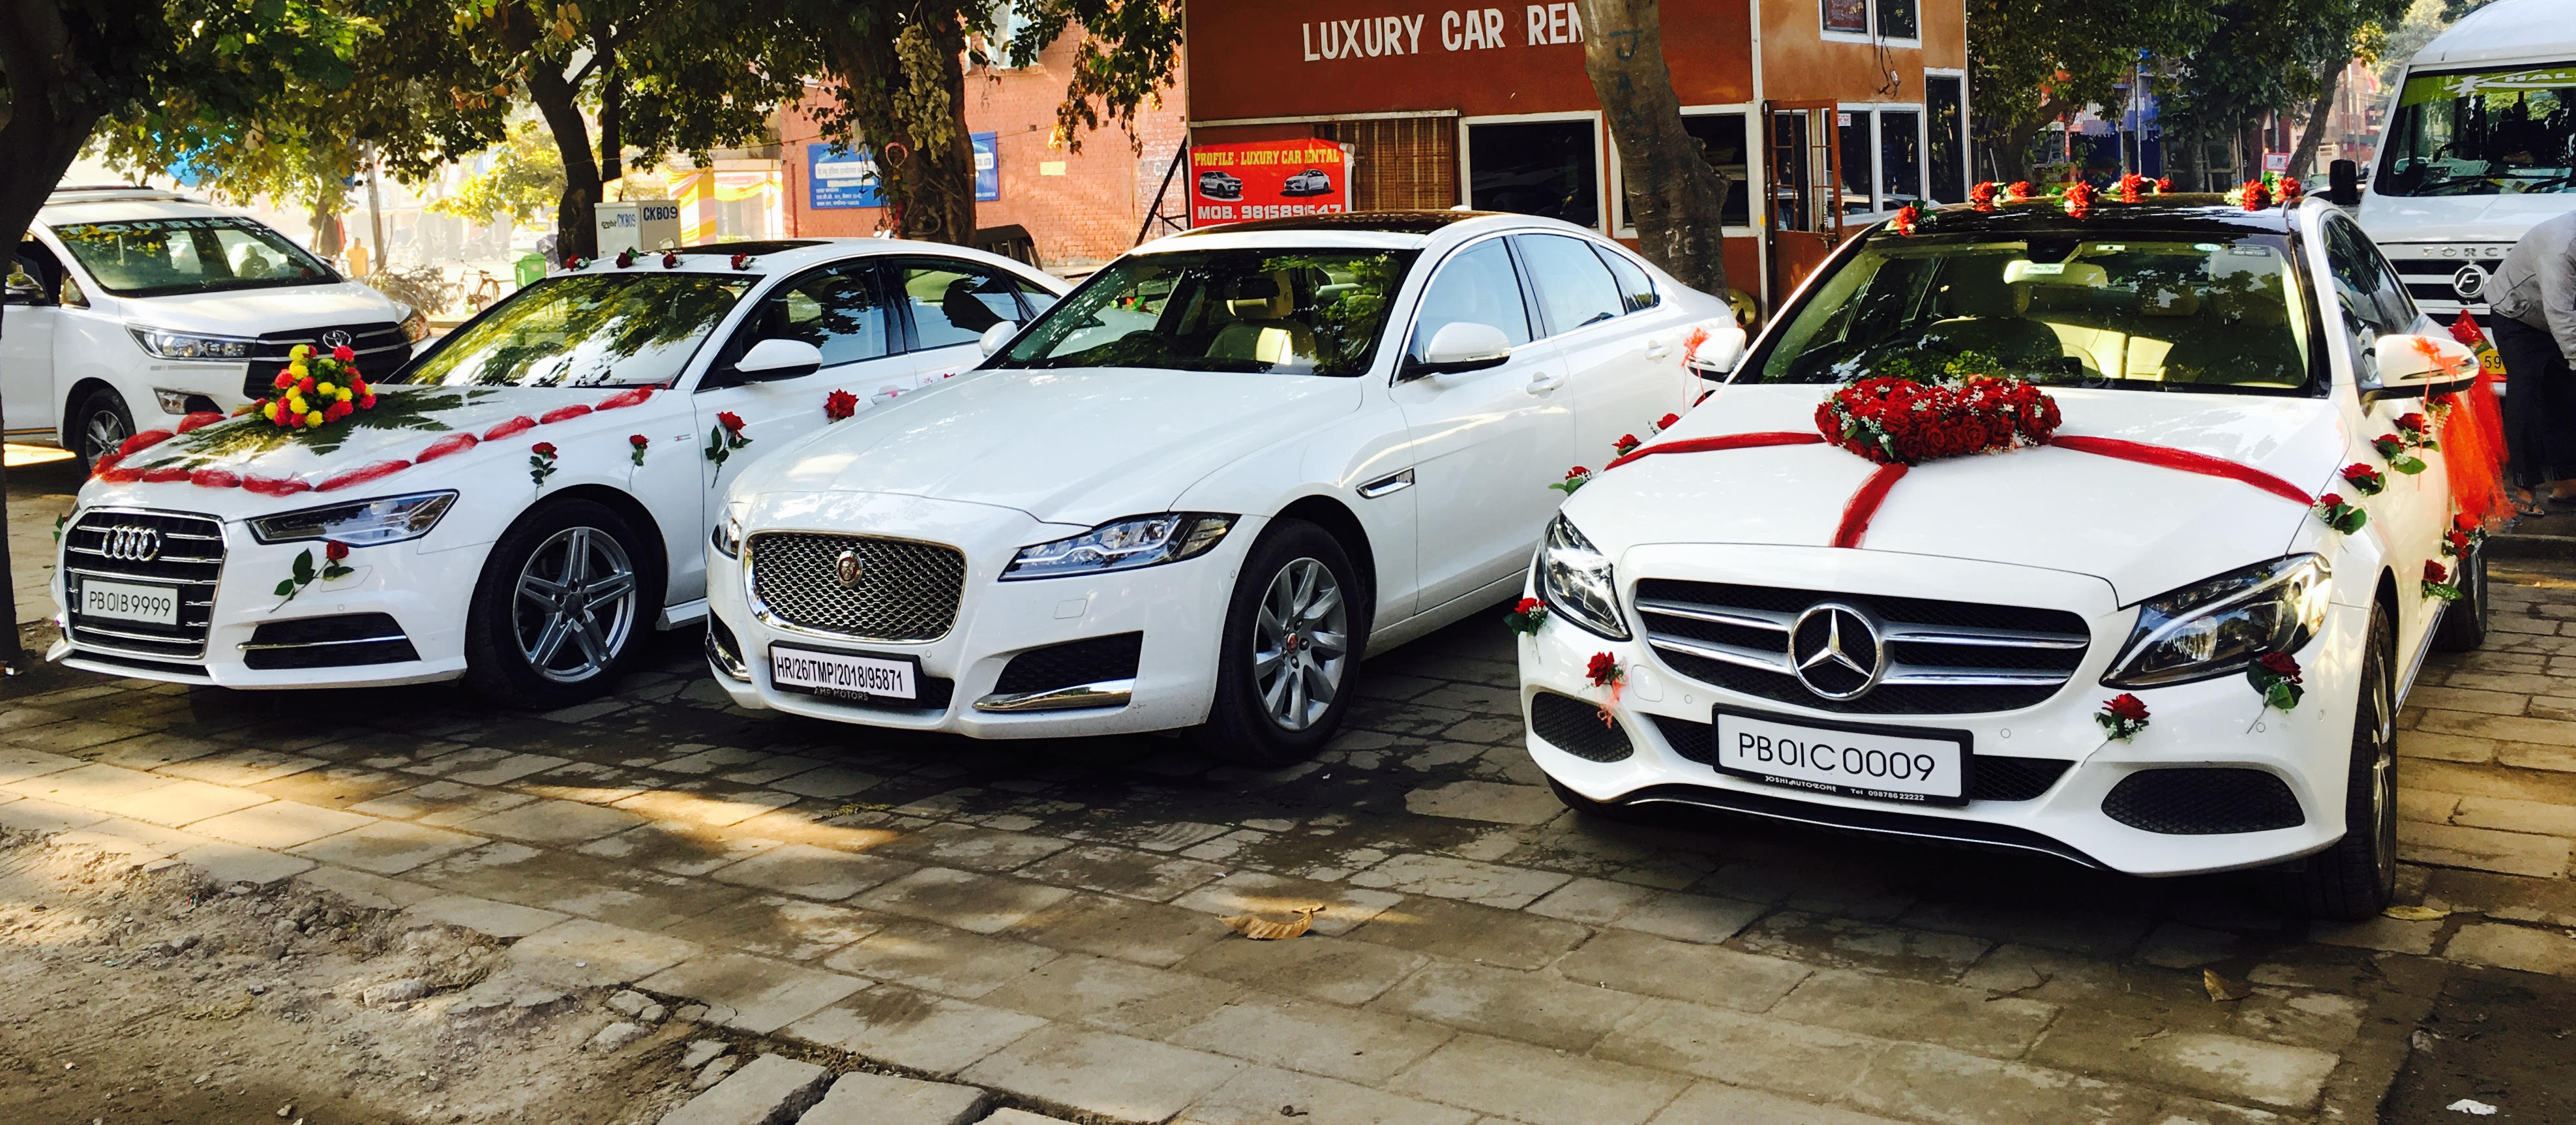 Wedding Car Rental Company In Chandigarh Khalsa Taxi Service